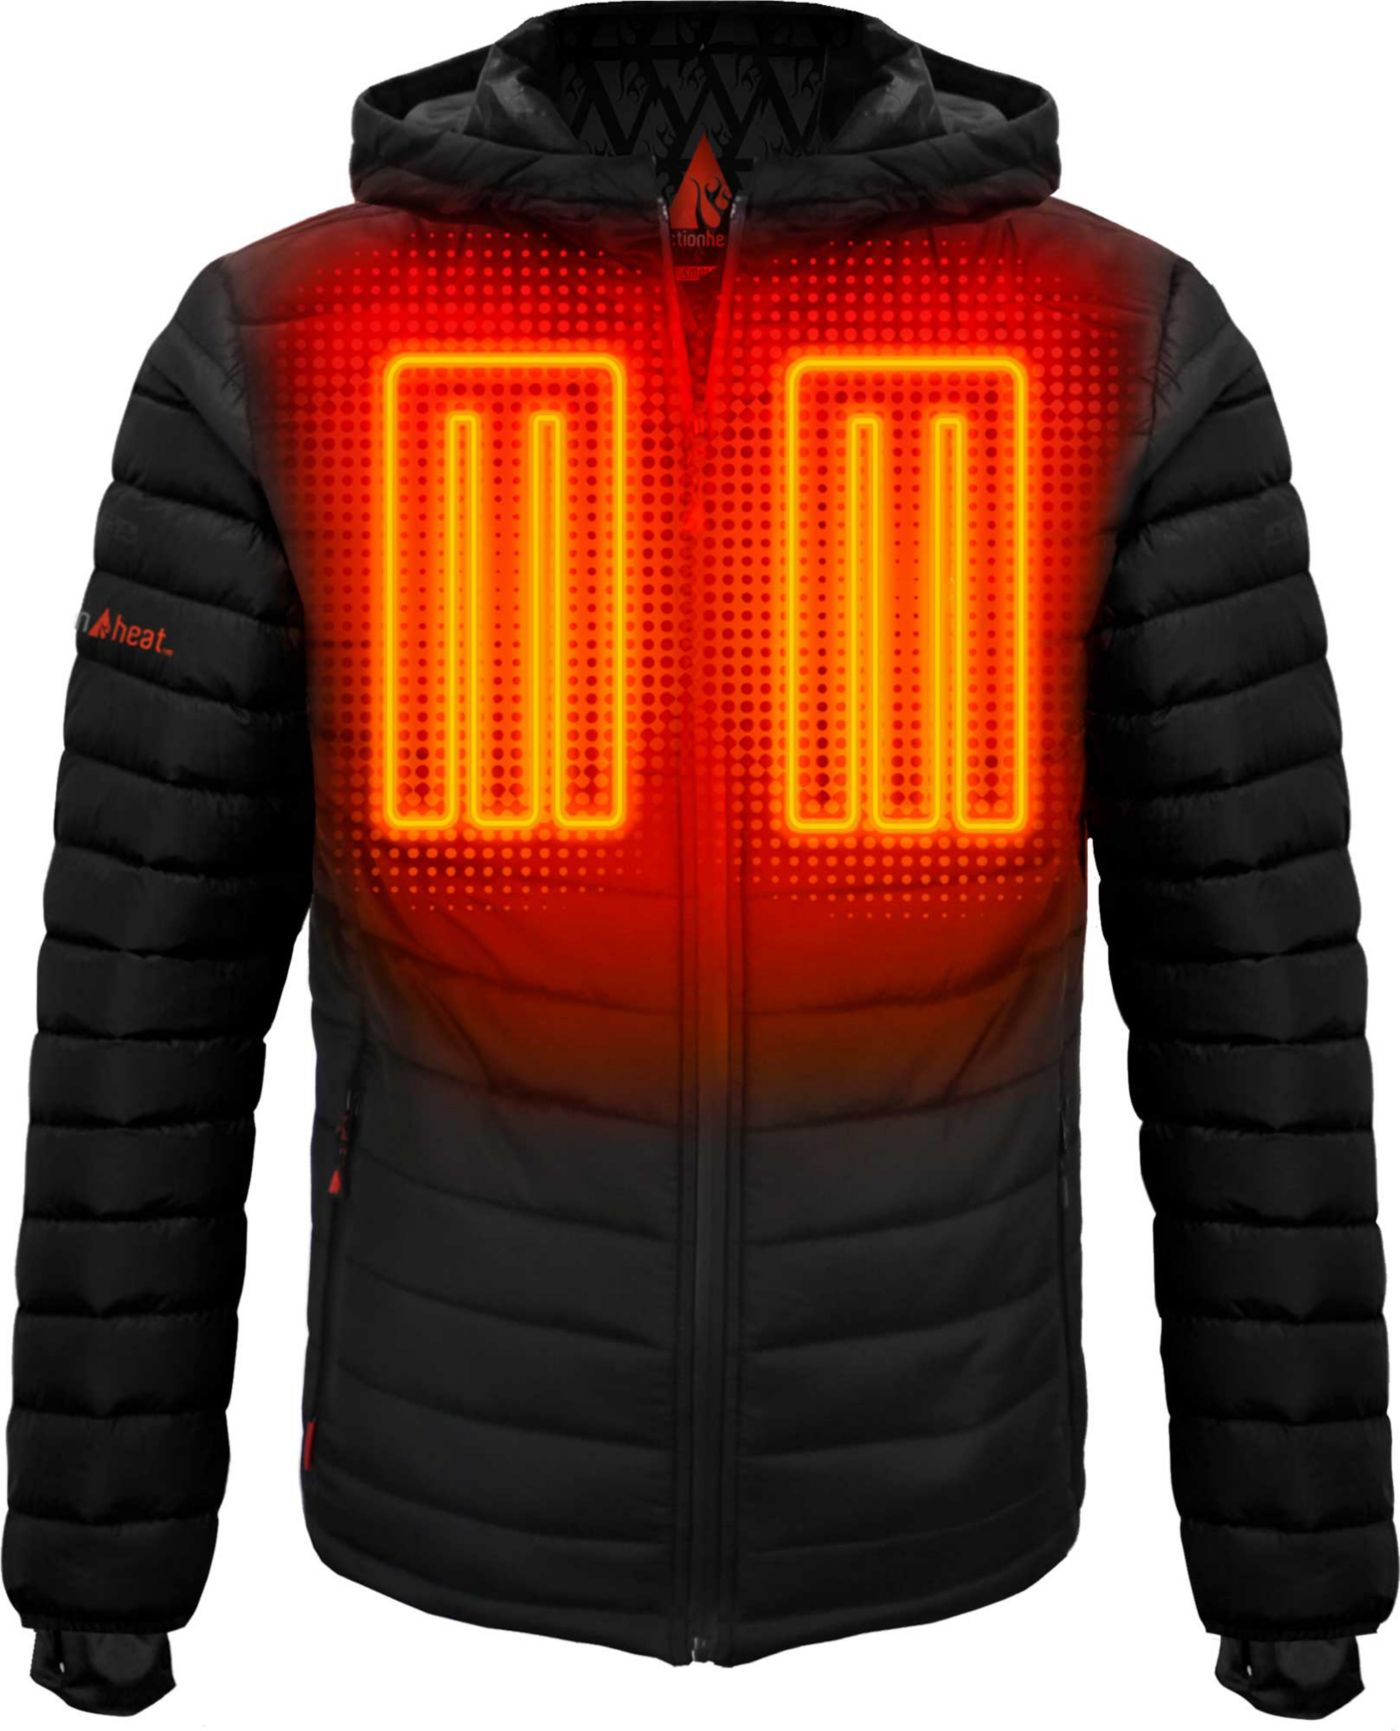 ActionHeat Men's 5V Battery Heated Insulated Puffer Jacket